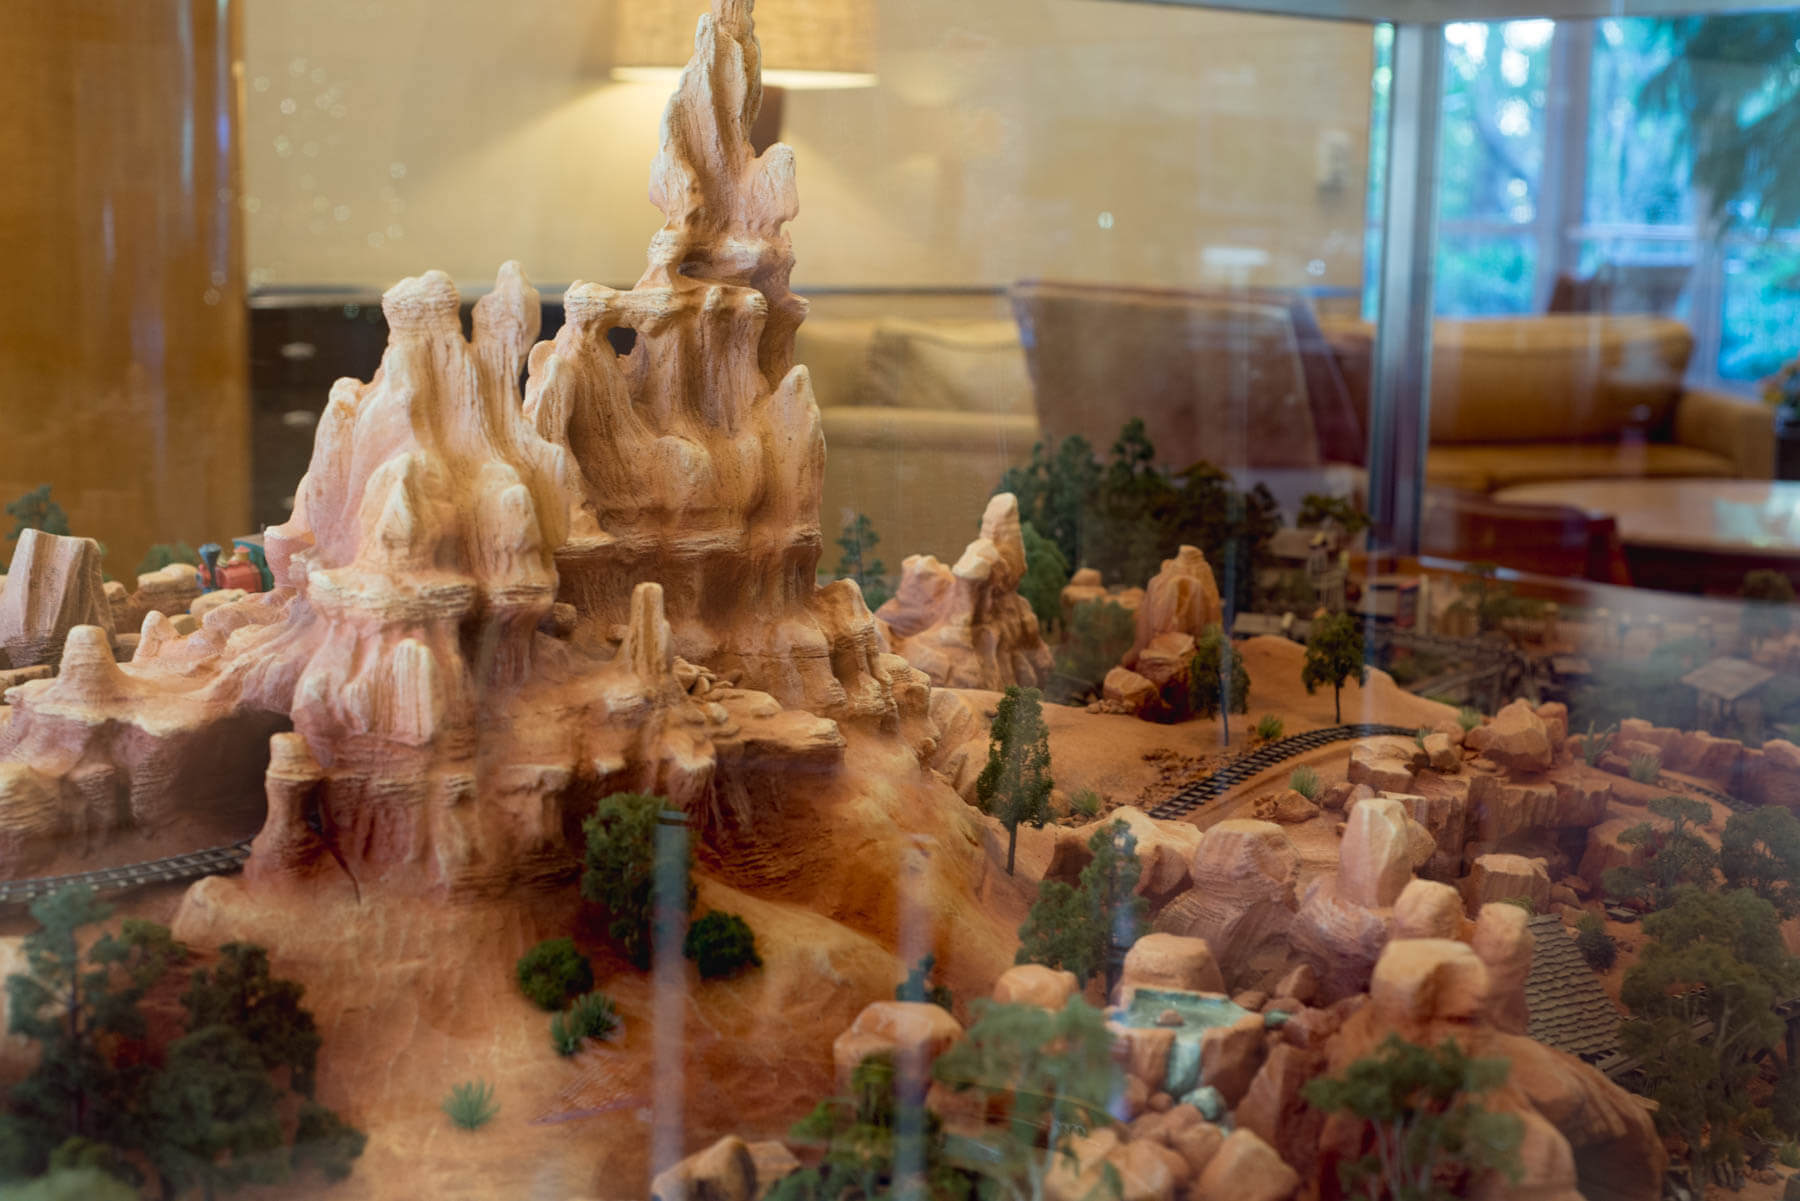 3D Map of Disneyland's Frontierland at The Disneyland Hotel